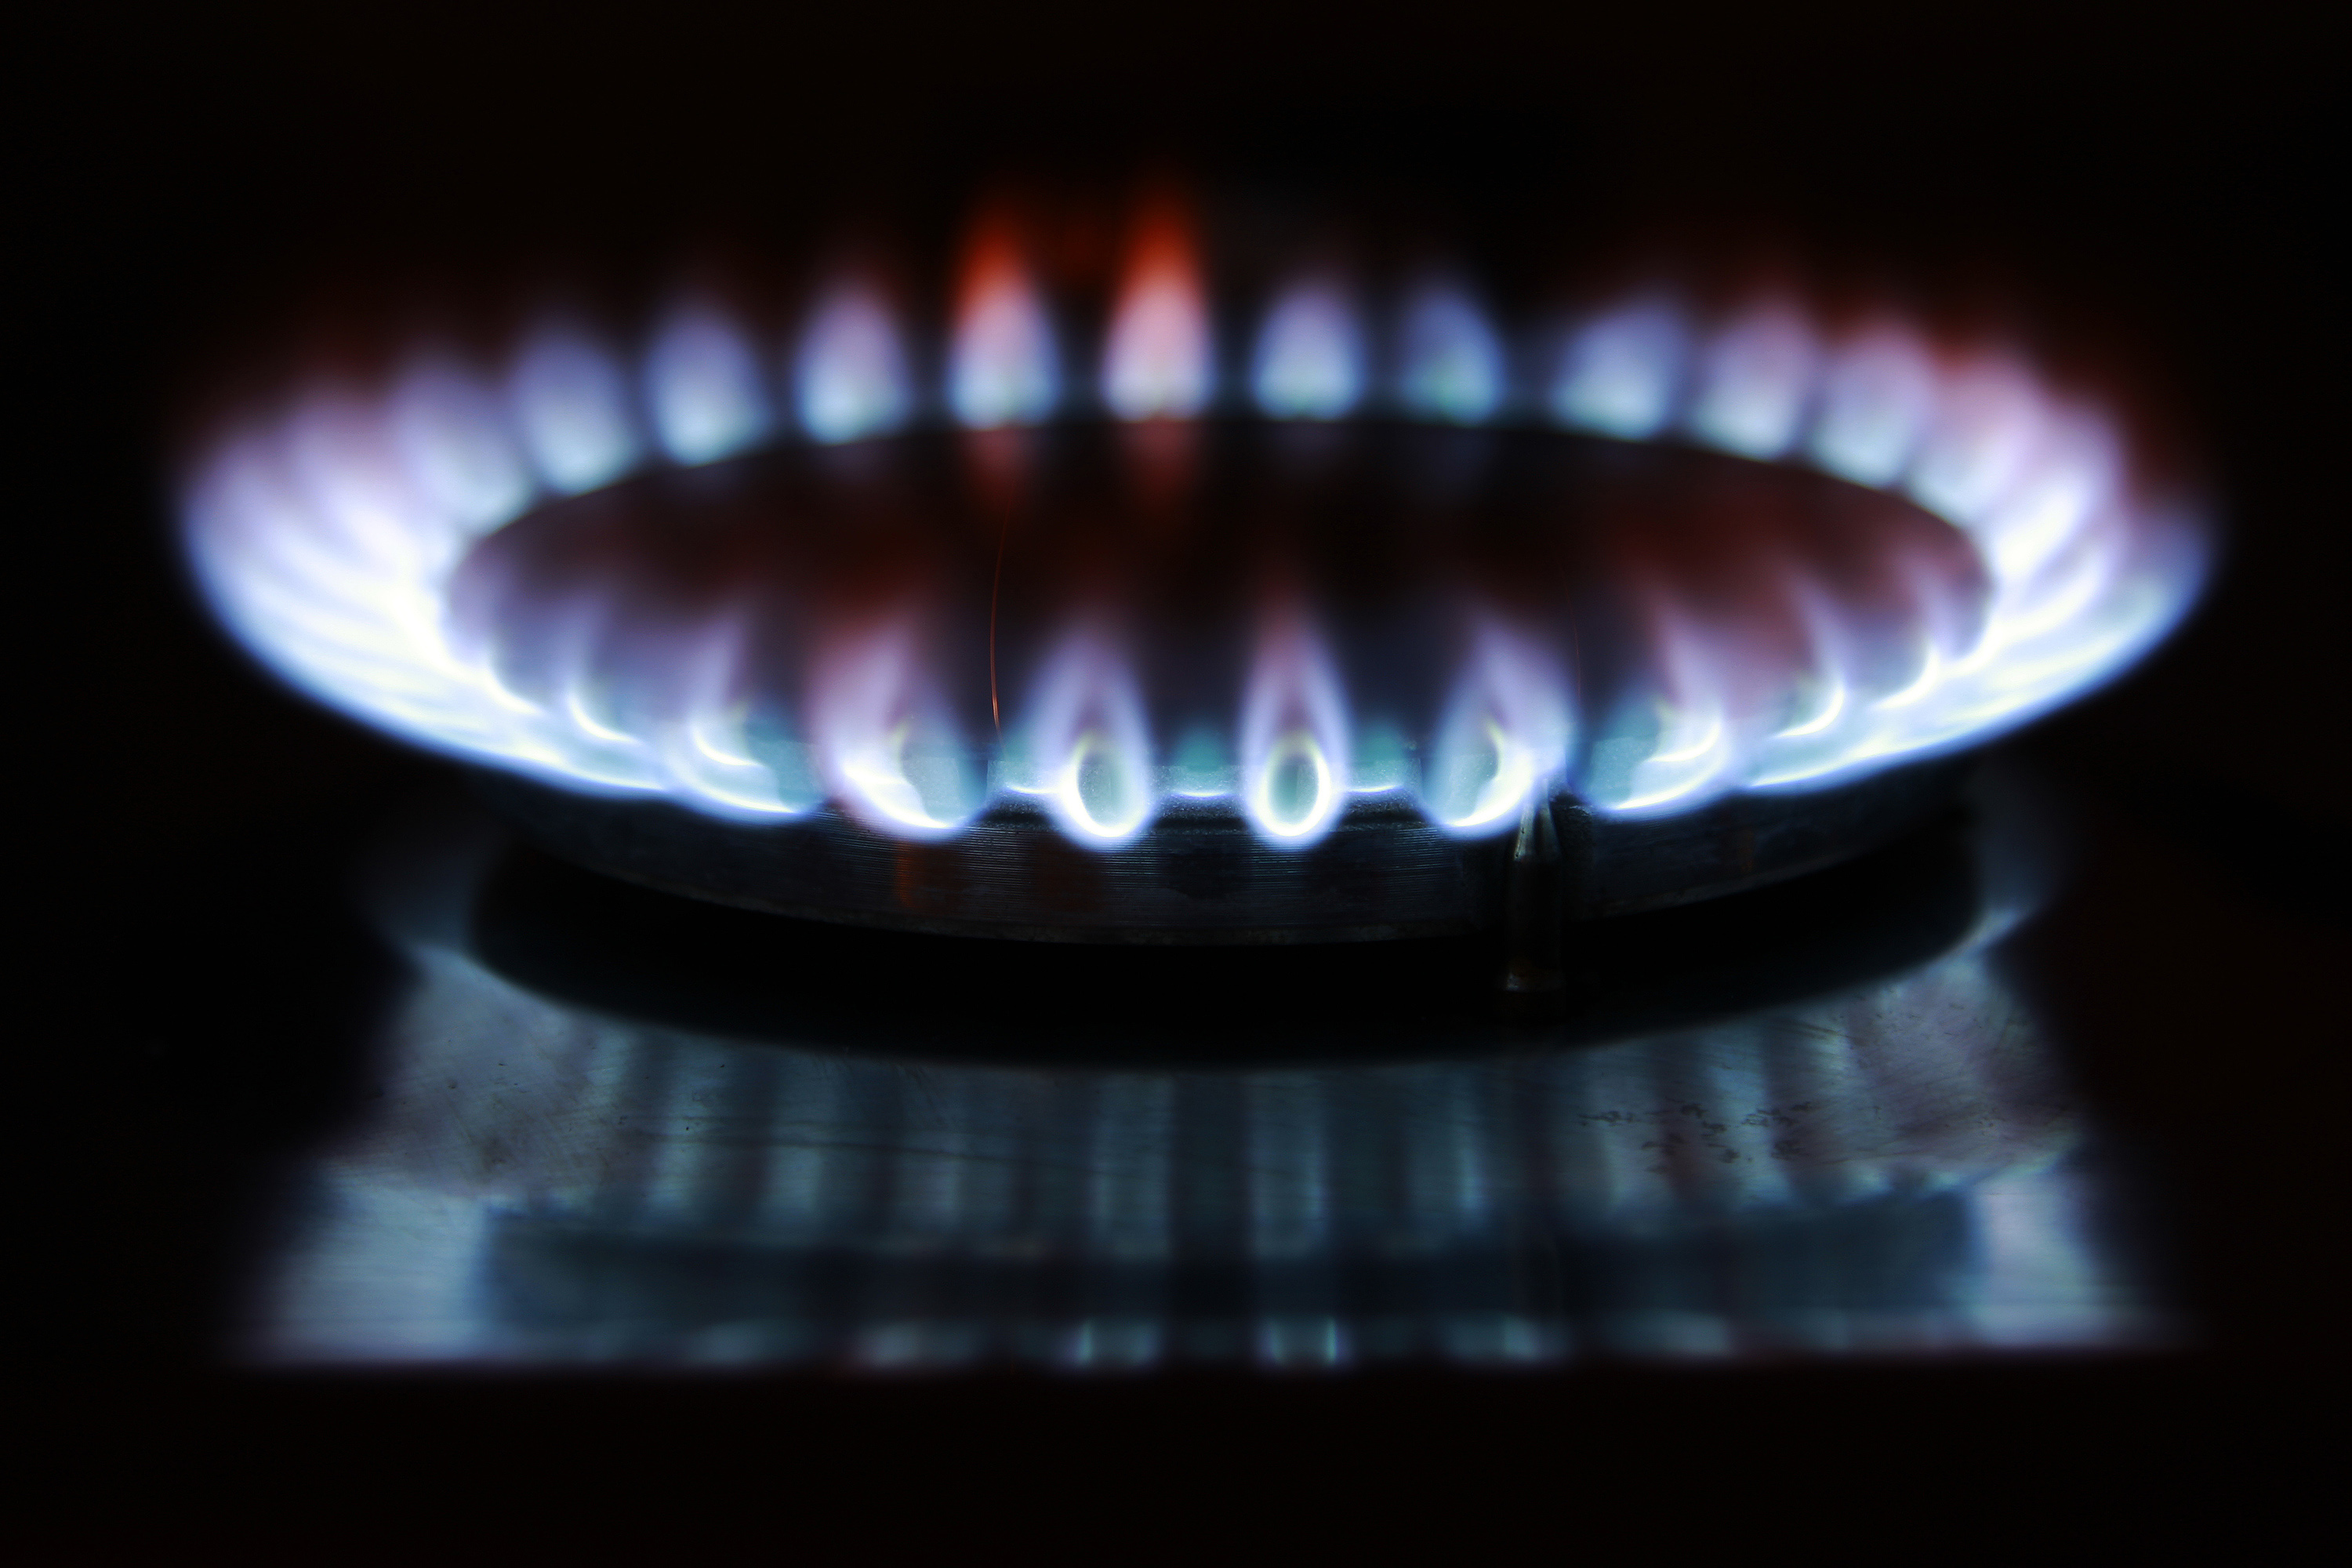 The energy price cap helps households save up to £100 a year - but many could save more.